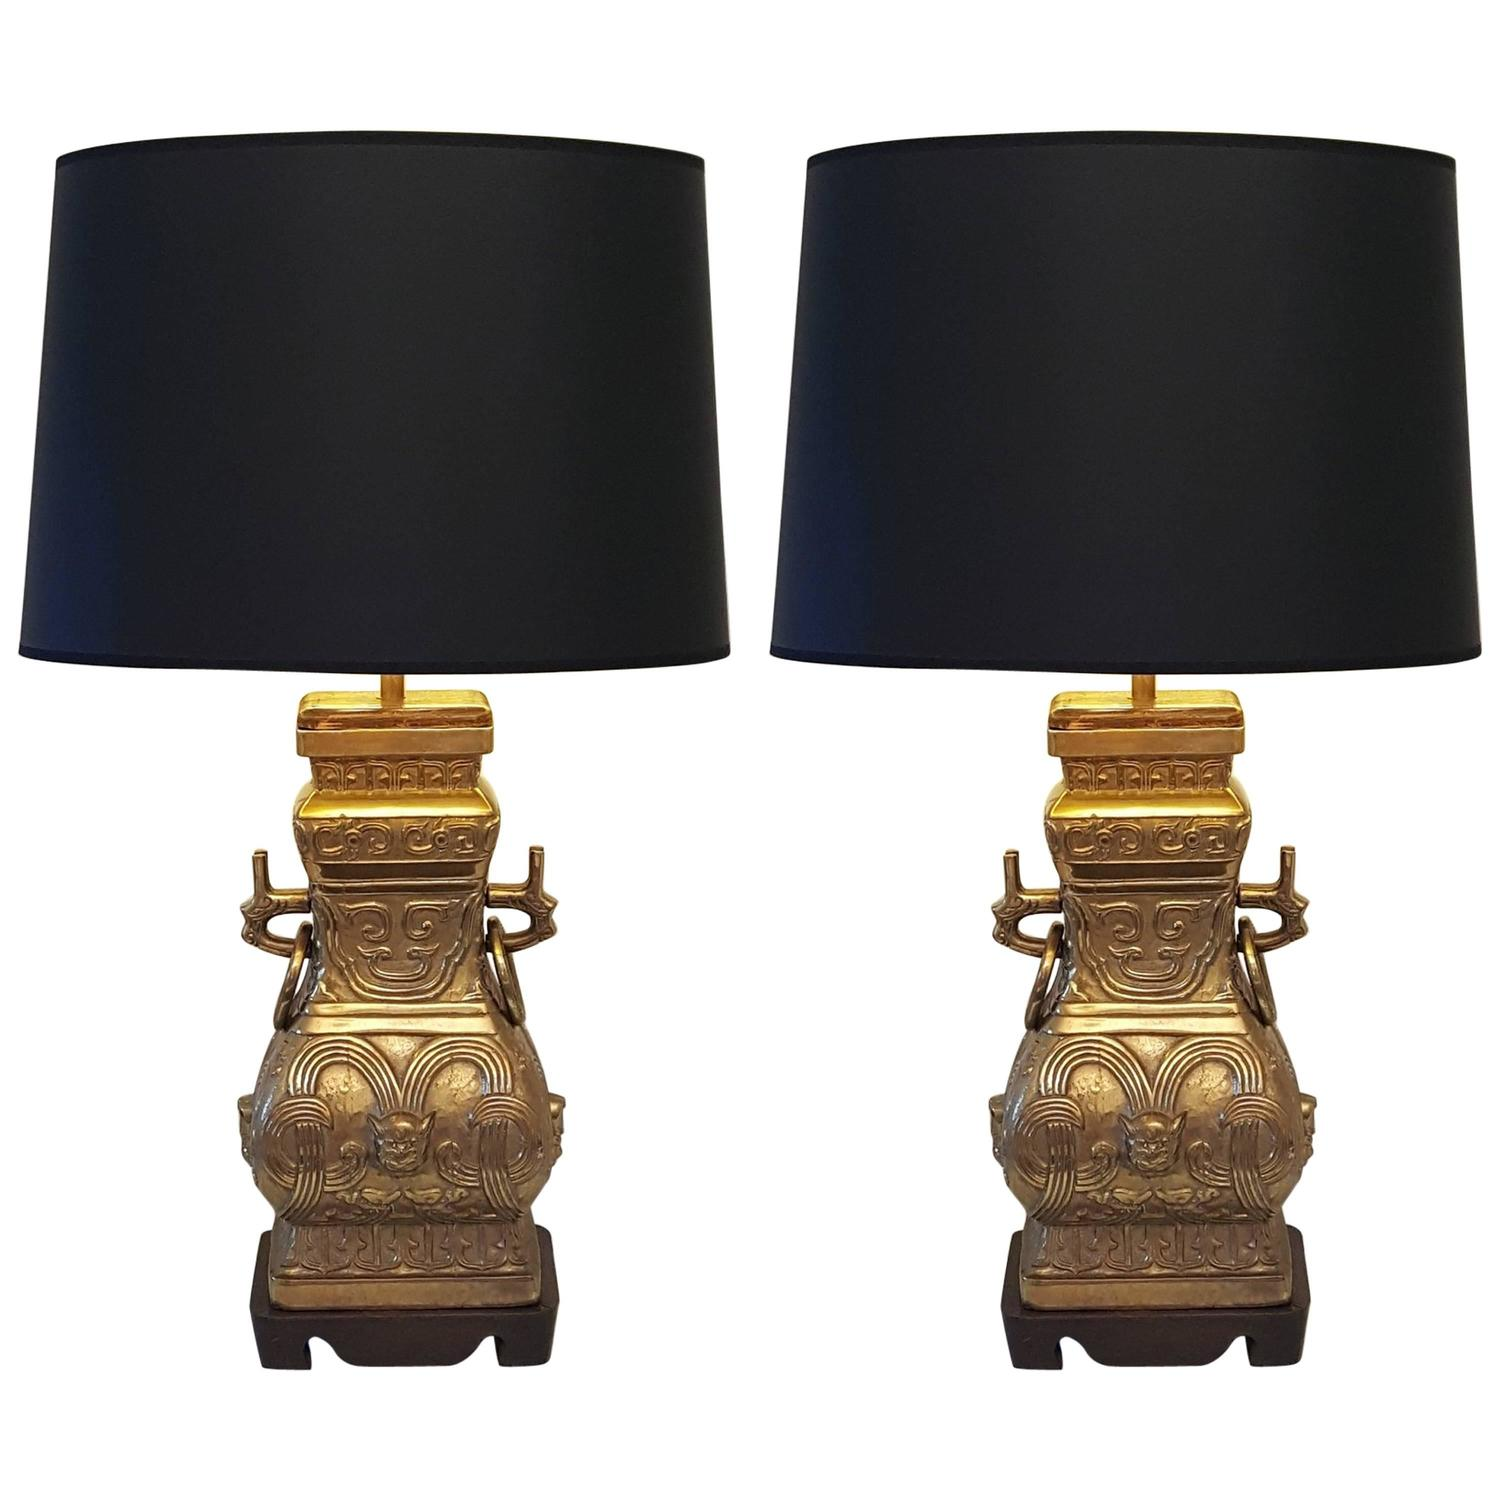 Chinoiserie table lamps 135 for sale at 1stdibs pair of impressive bronze brass chinese chinoiserie urn table lamps geotapseo Image collections